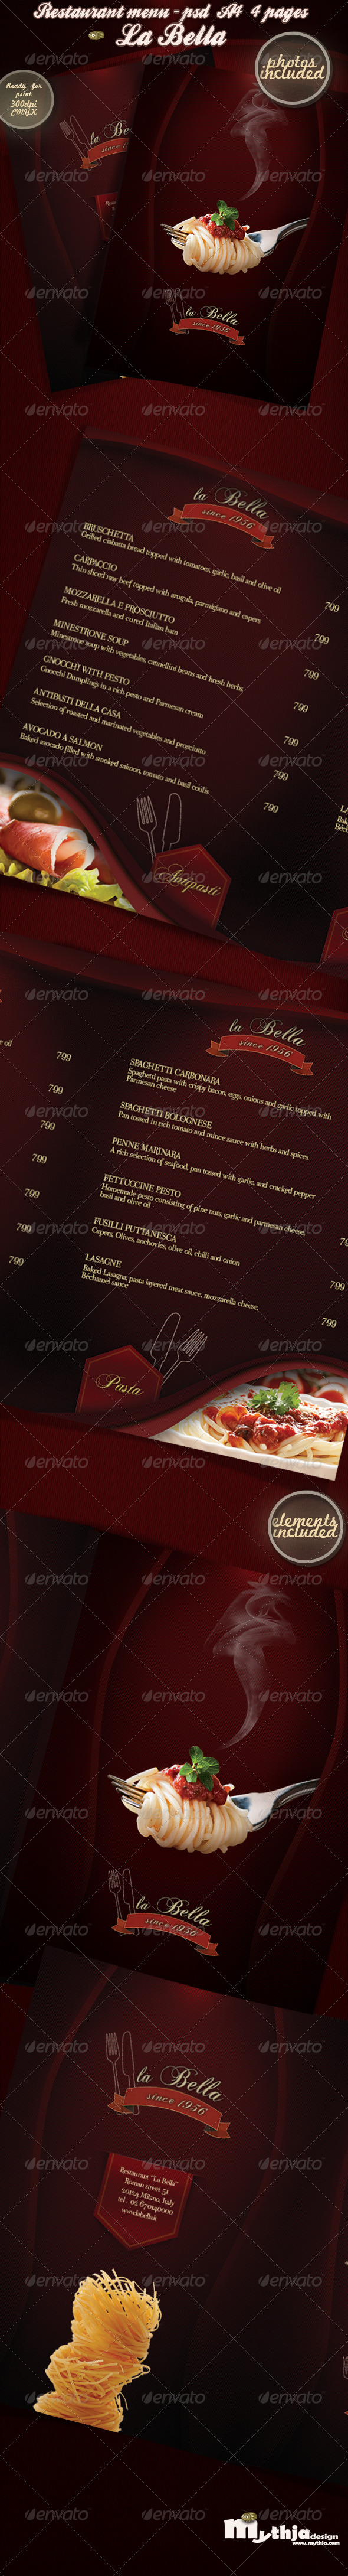 GraphicRiver La Bella Restaurant Menu Photos Included 2427045